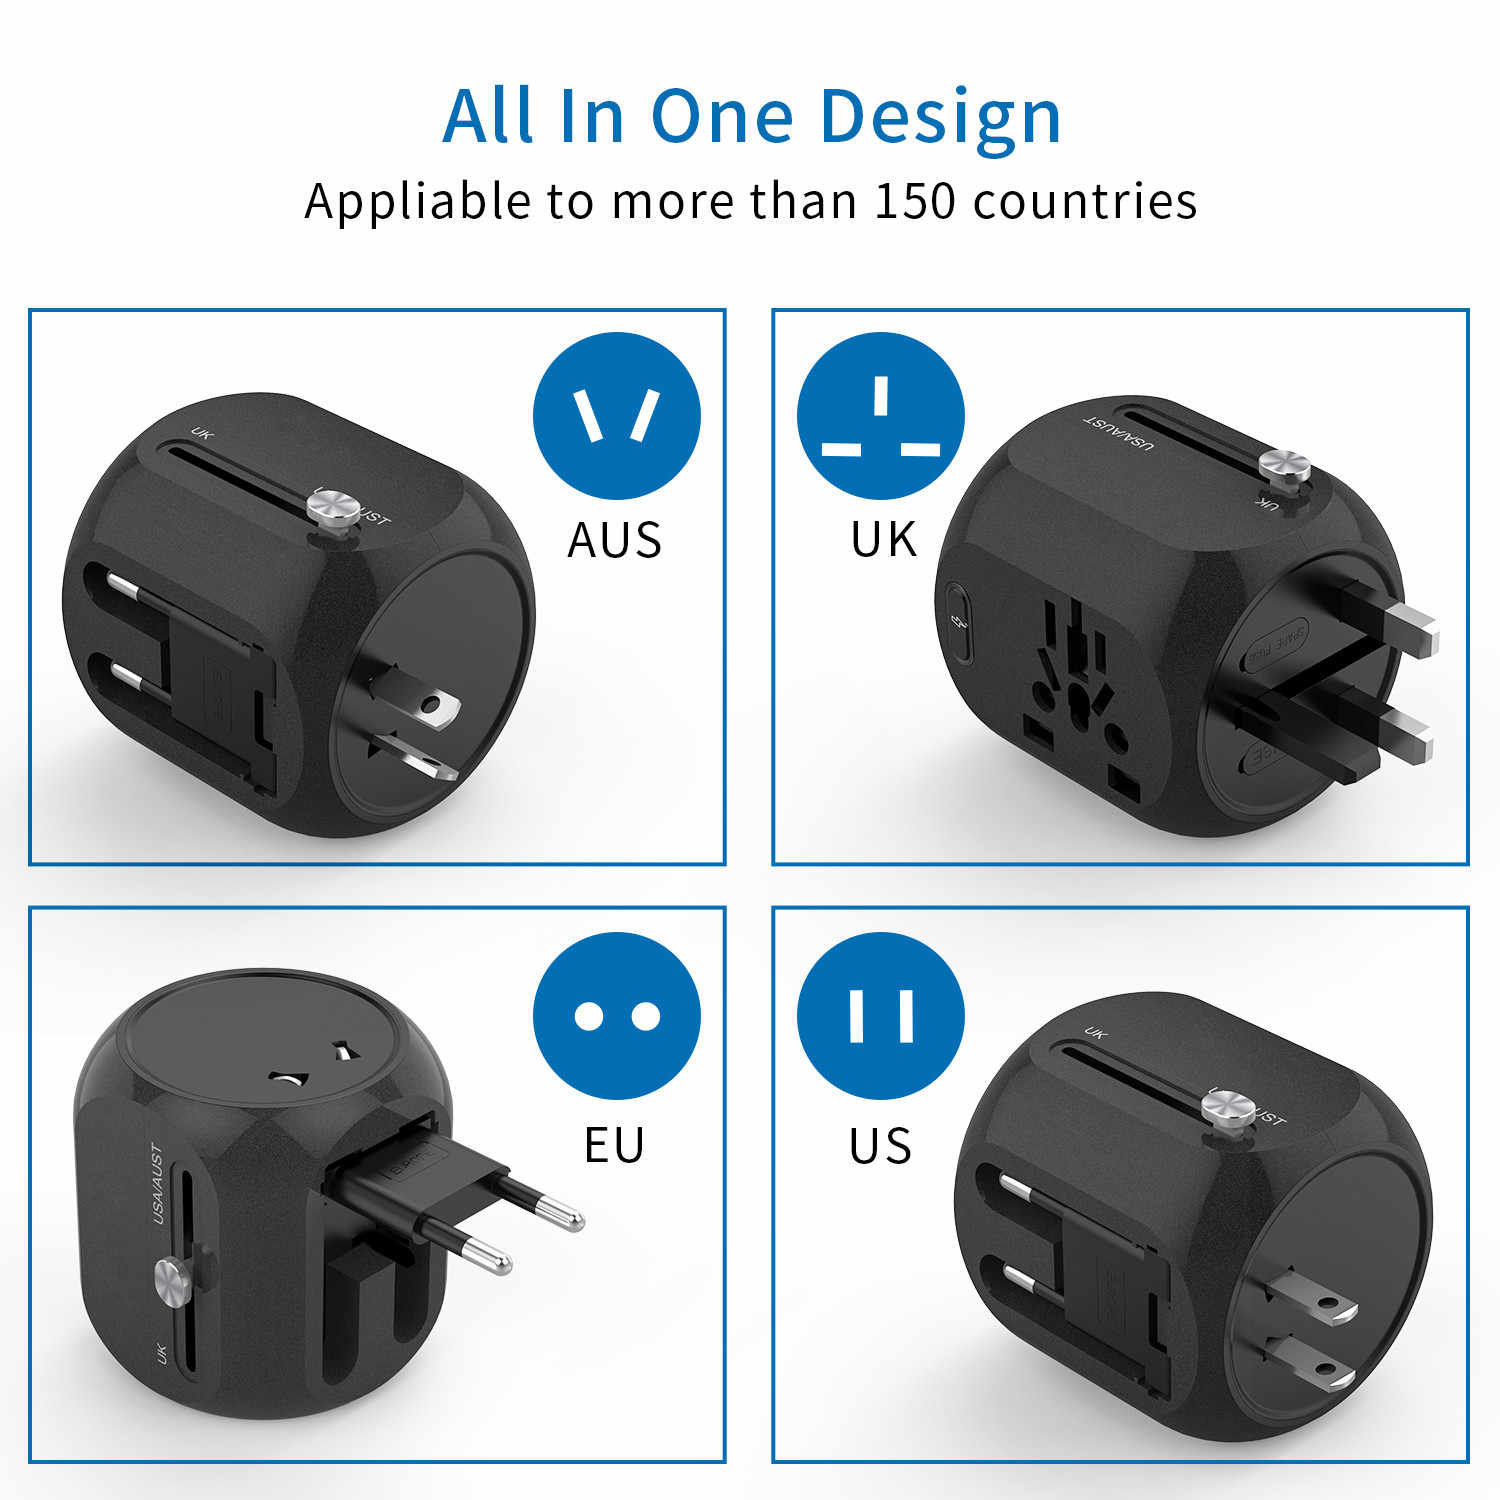 Ntonpower Adaptor Universal All-In-One International Travel Plug Adaptor dengan TYPE C QC3.0 Dinding Charger untuk US/EU/AU/UK